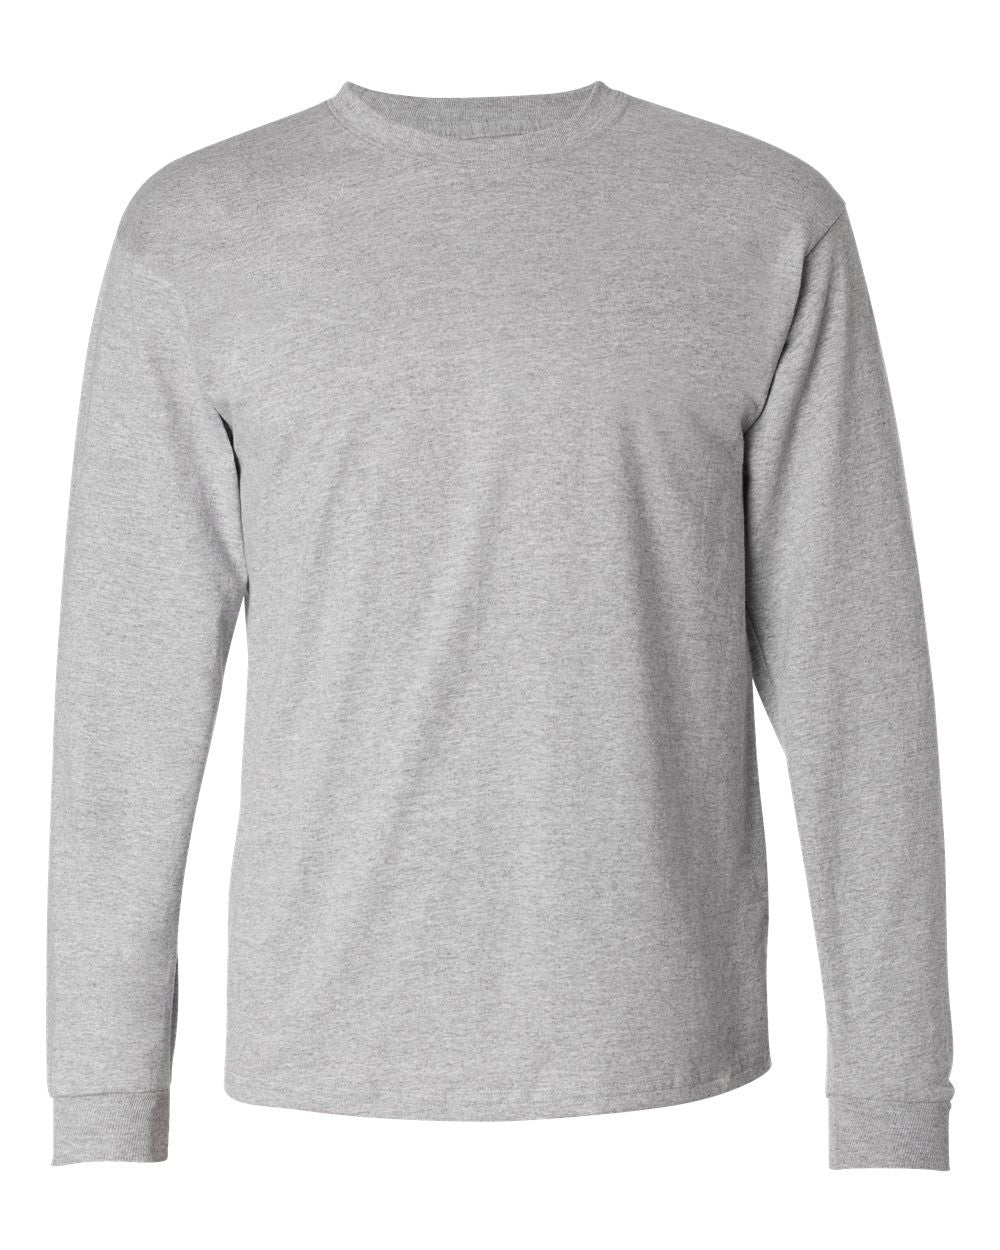 4 pack Long sleeve t-shirt by Hanes